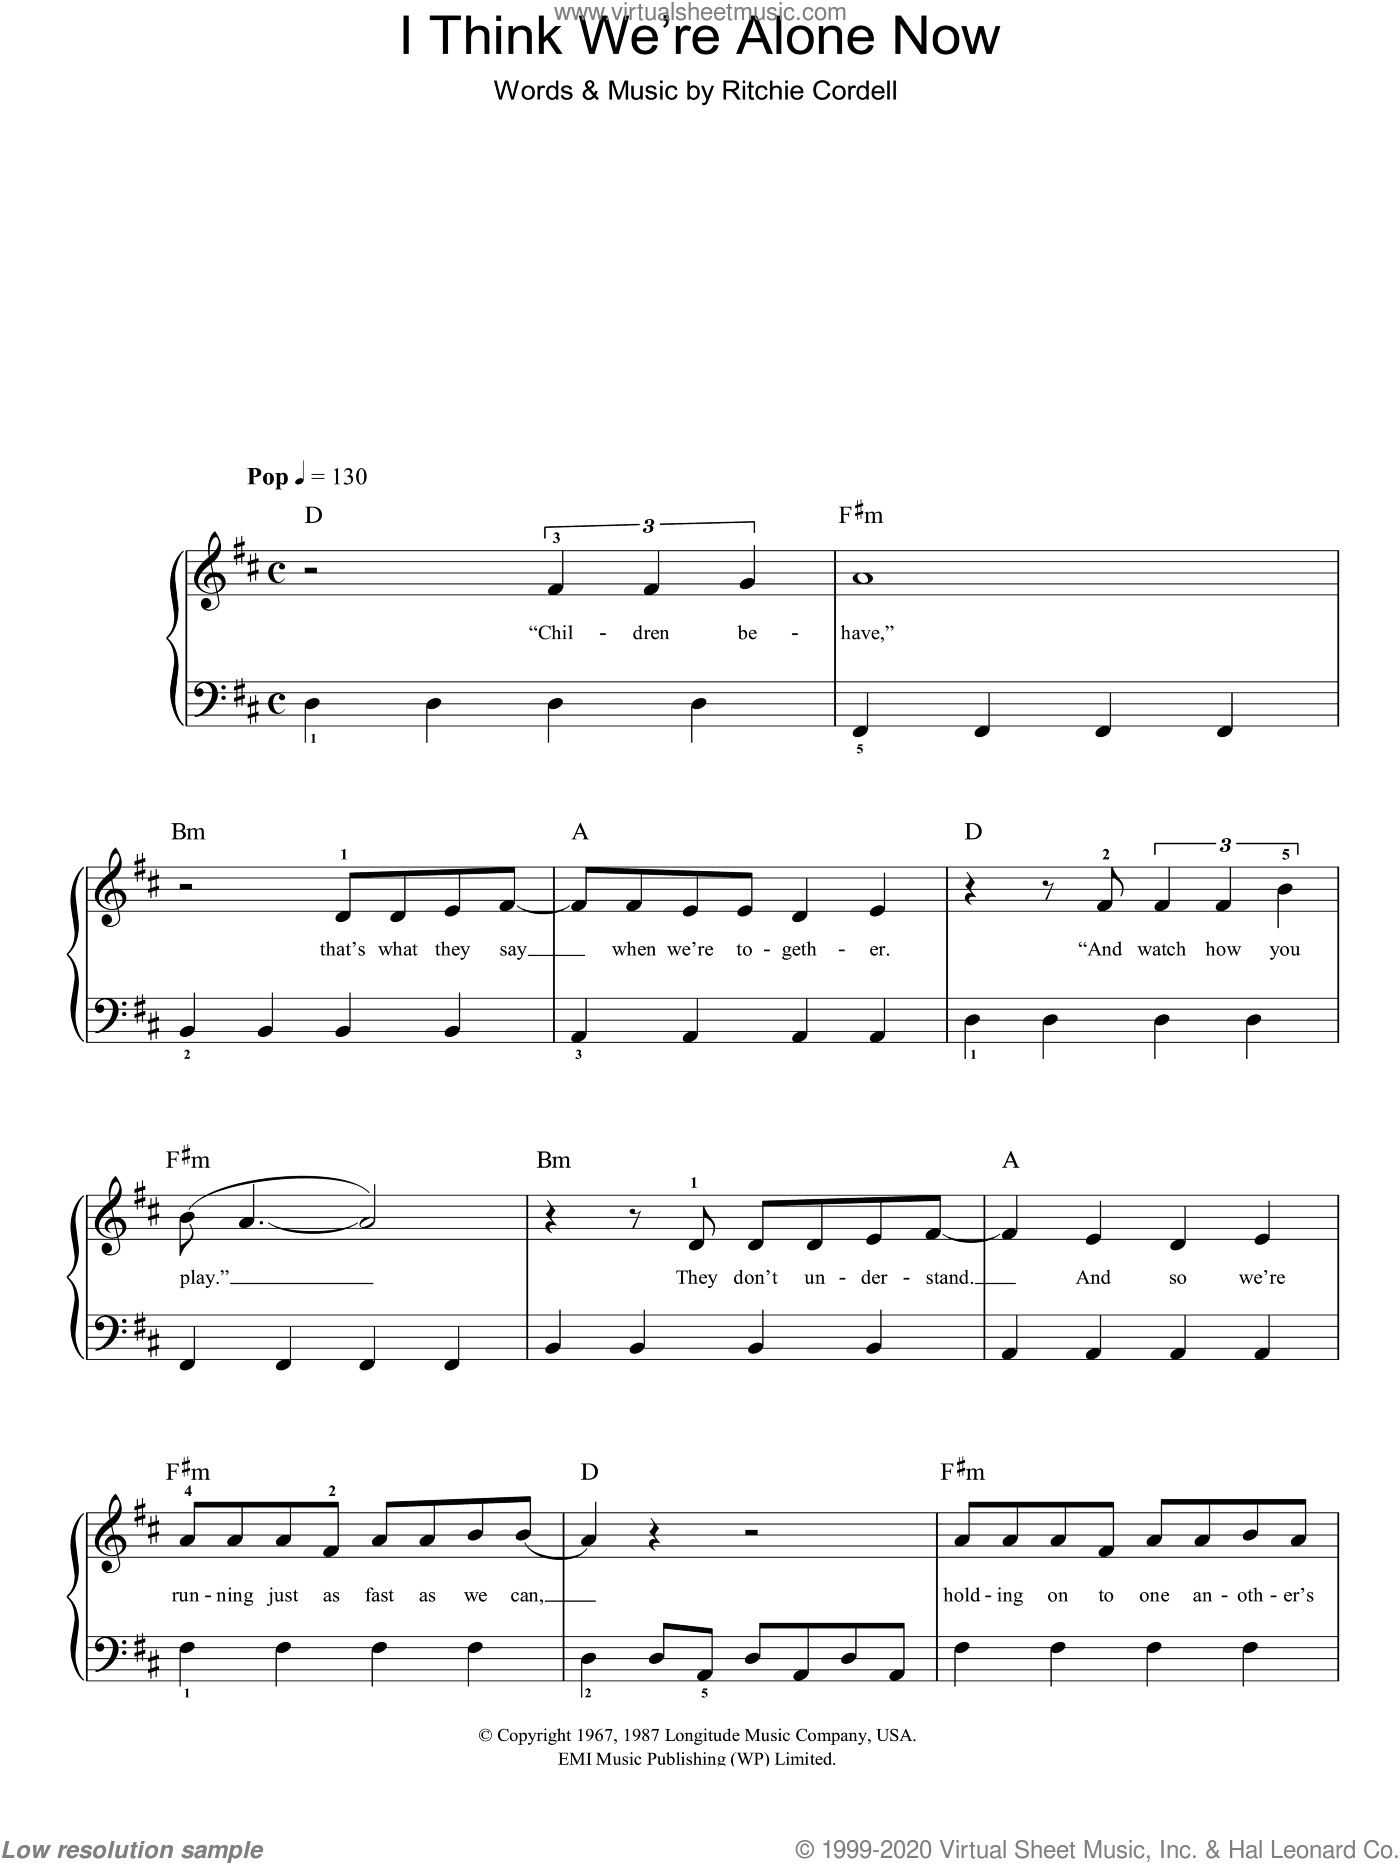 I Think We're Alone Now sheet music for piano solo by Tiffany and Ritchie Cordell